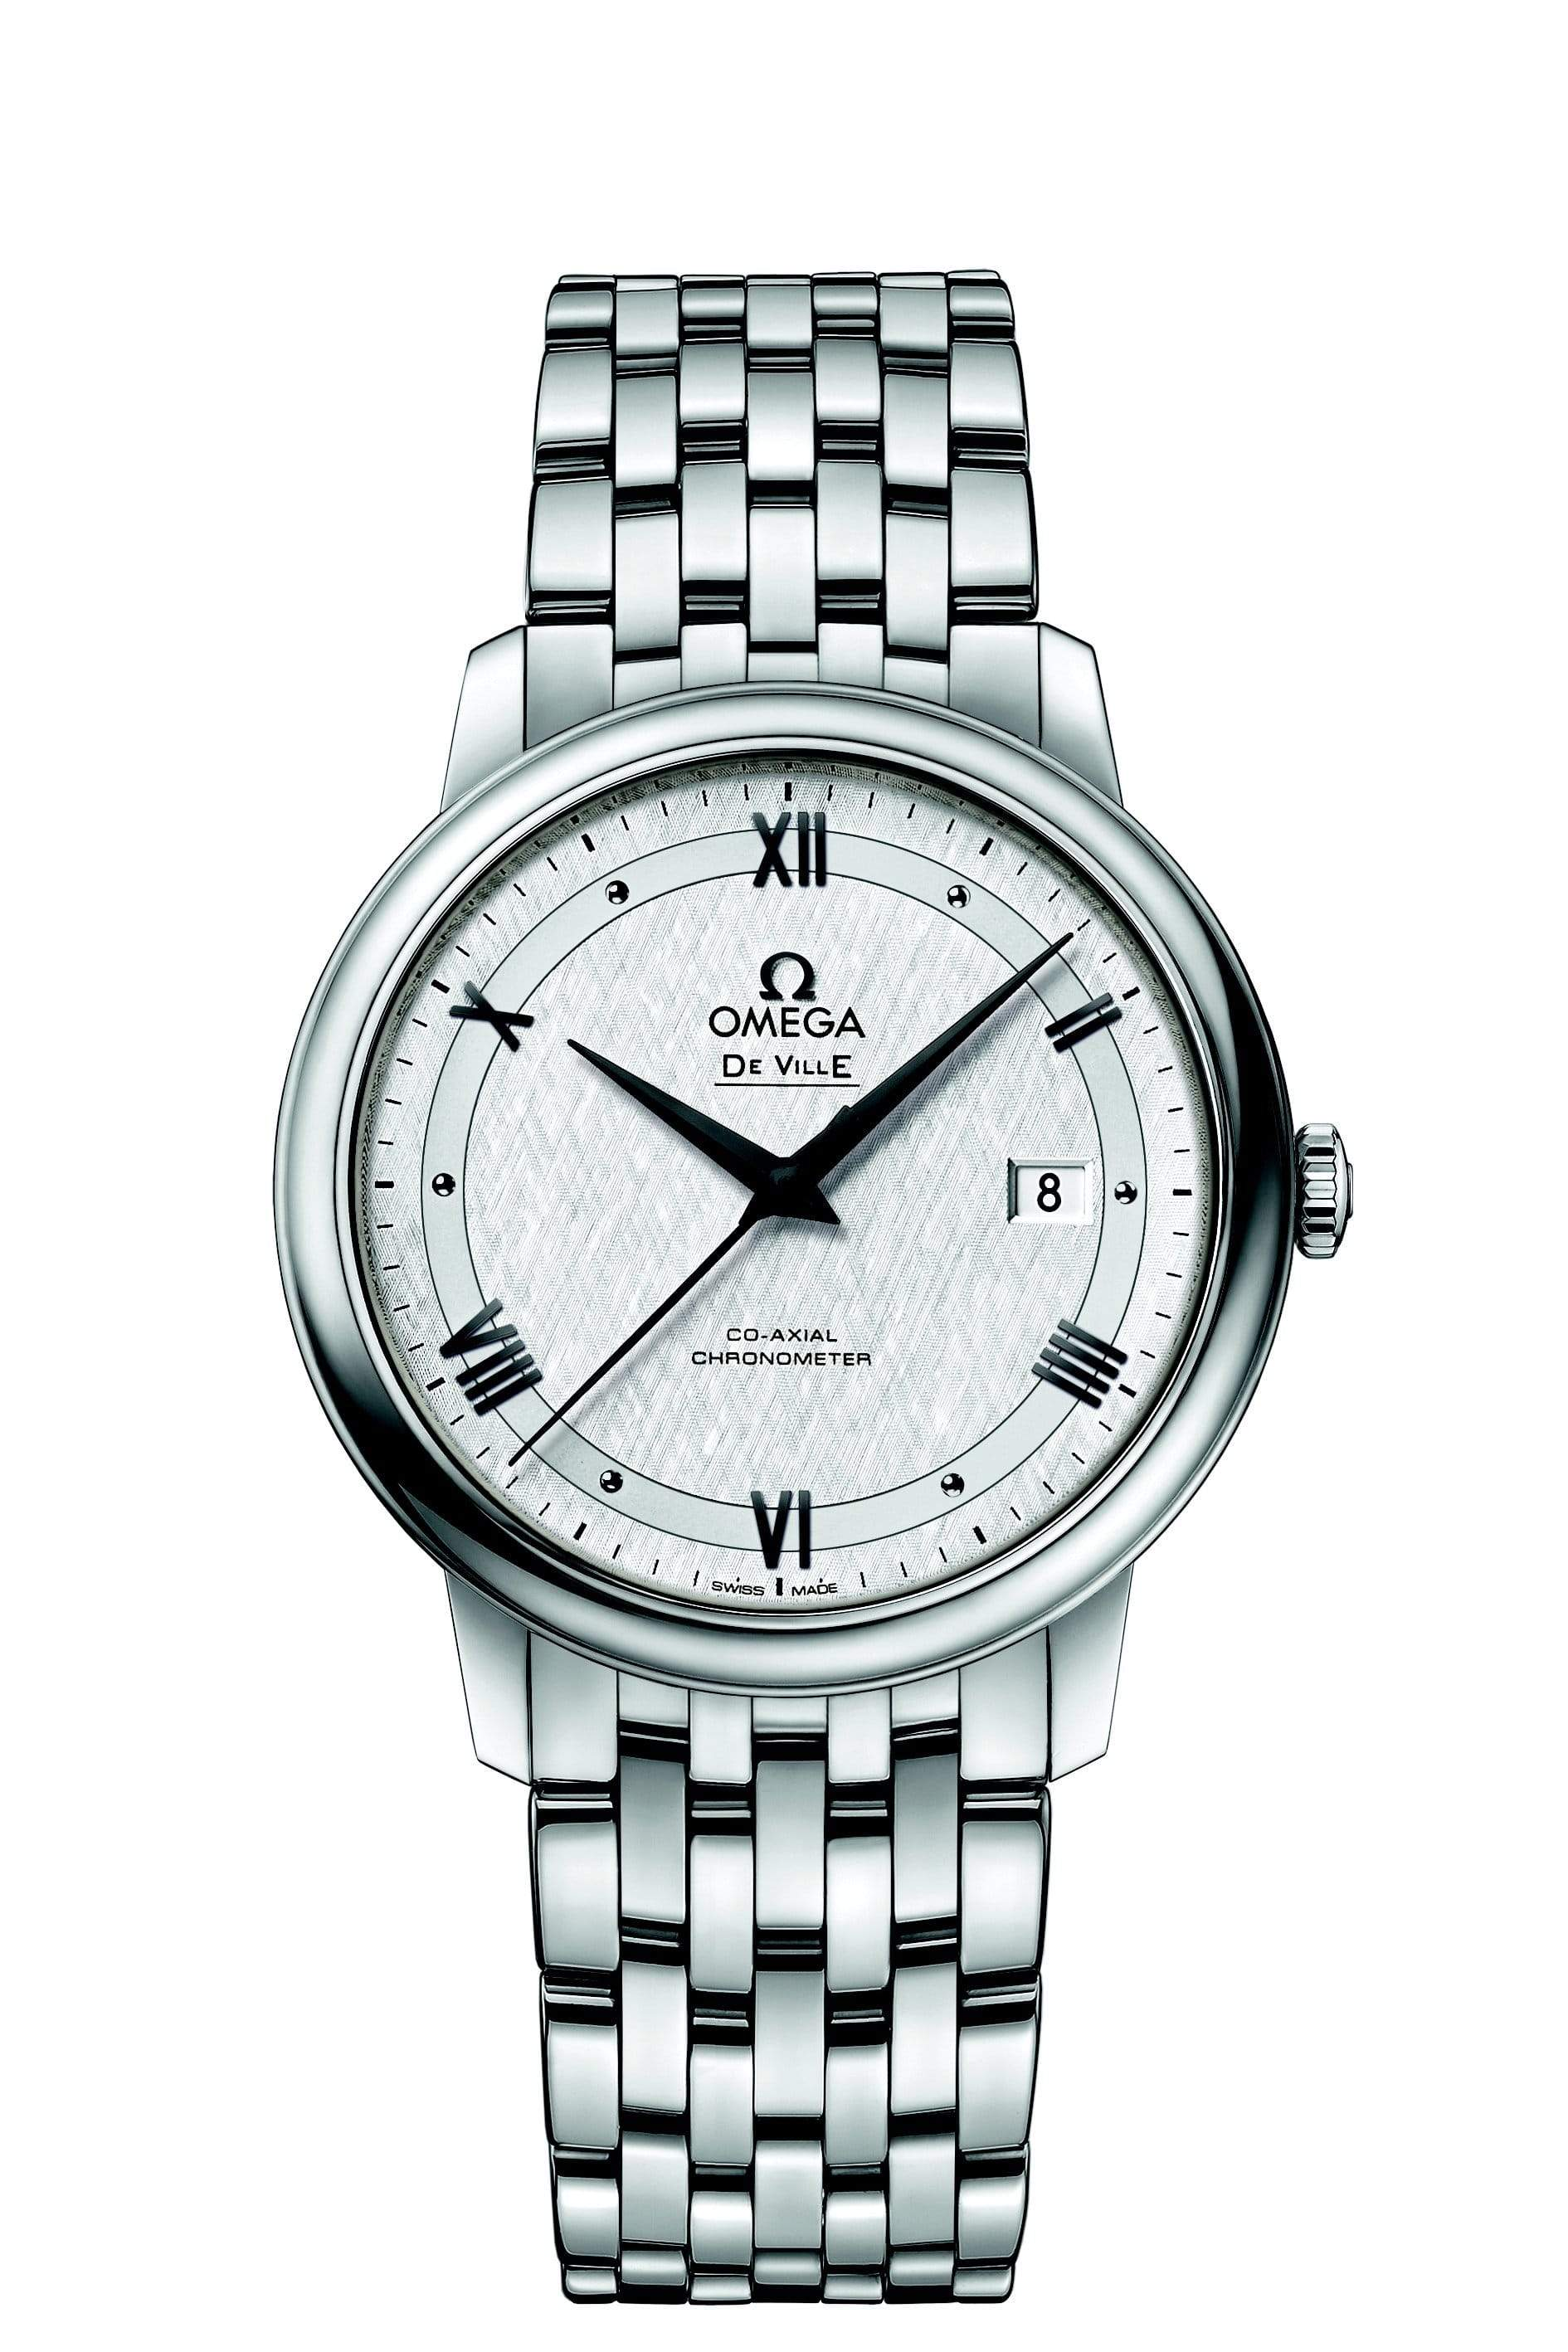 OMEGA Watch OMEGA De Ville Prestige Watch